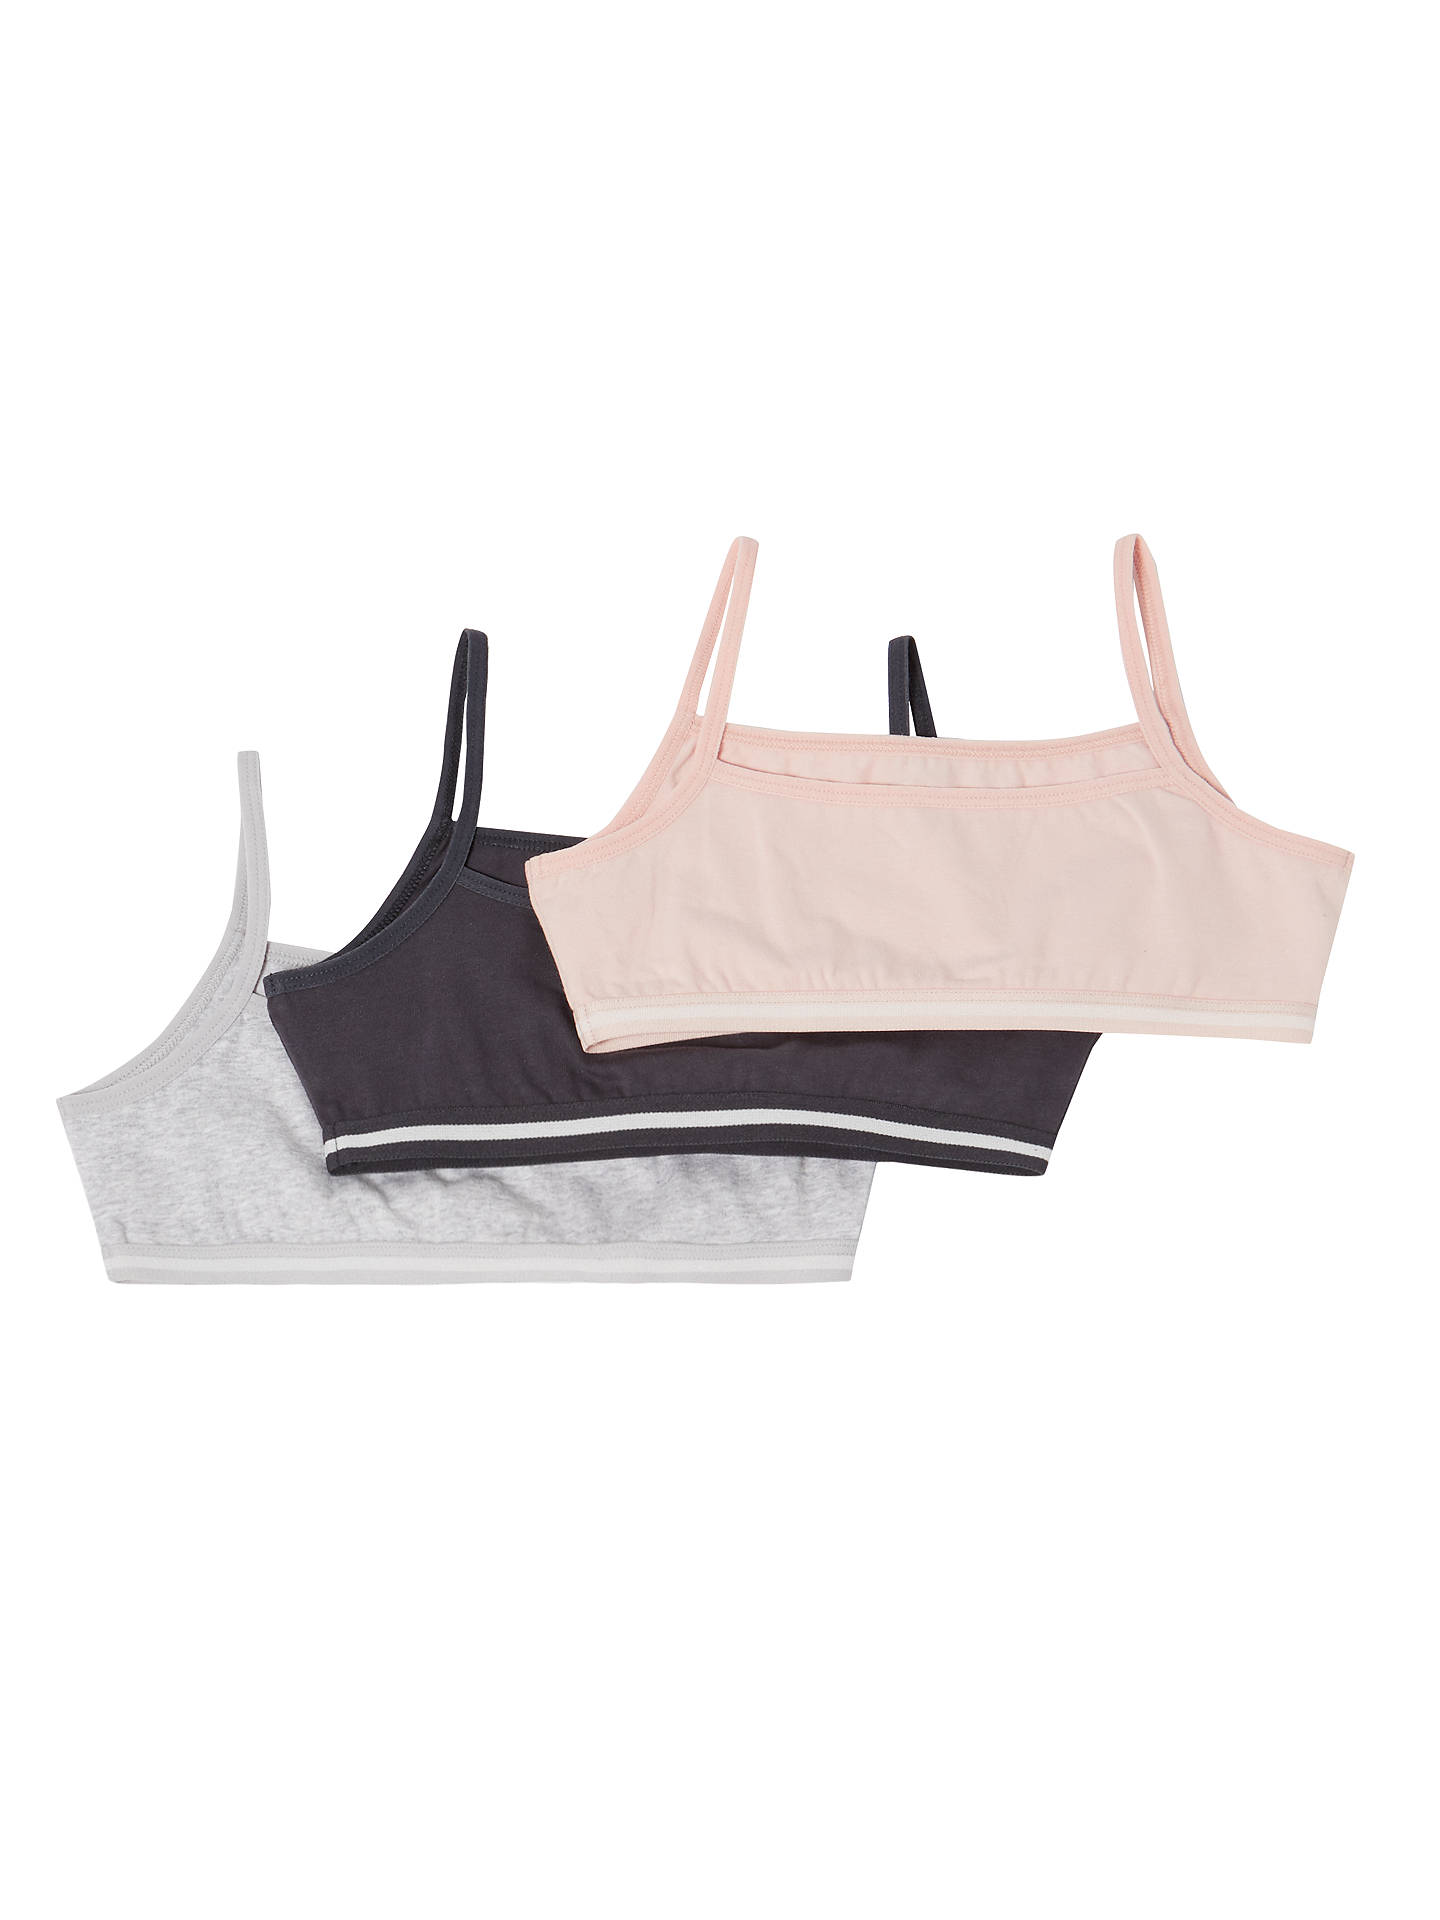 BuyJohn Lewis & Partners Girls' Plain Crop Tops, Pack of 3, Multi, 8 years Online at johnlewis.com